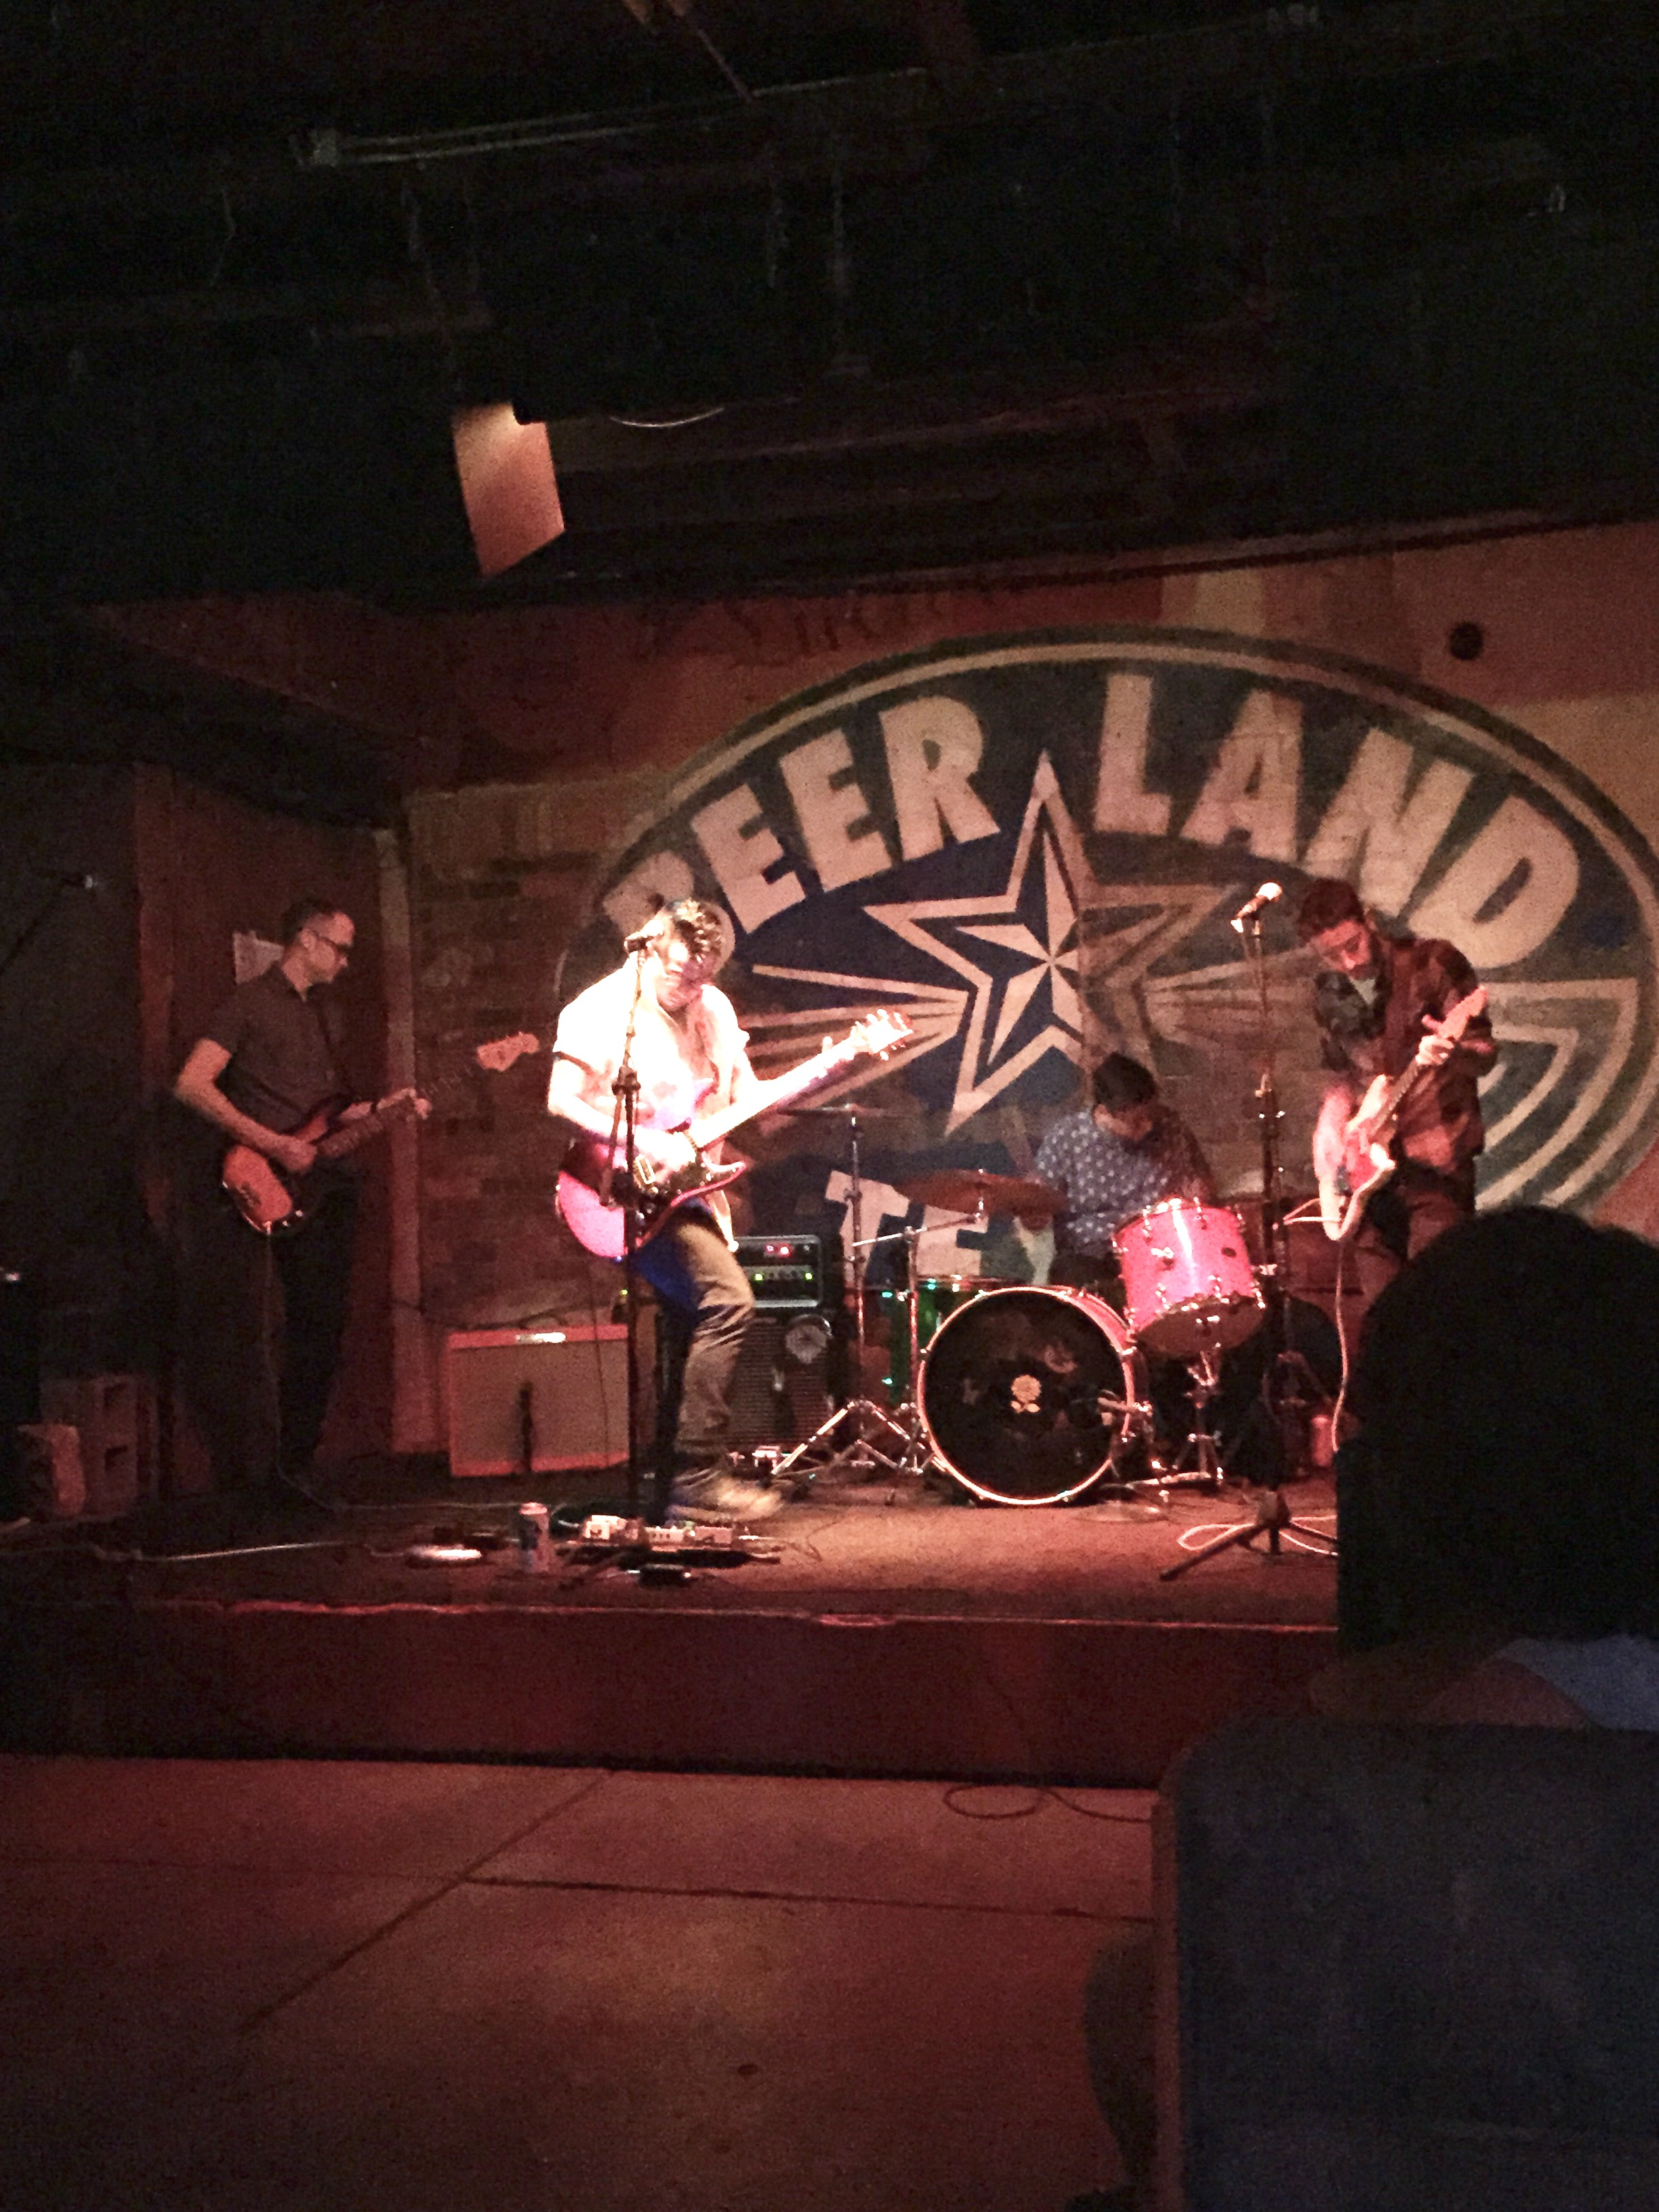 Surfer-rock band at Beer Land